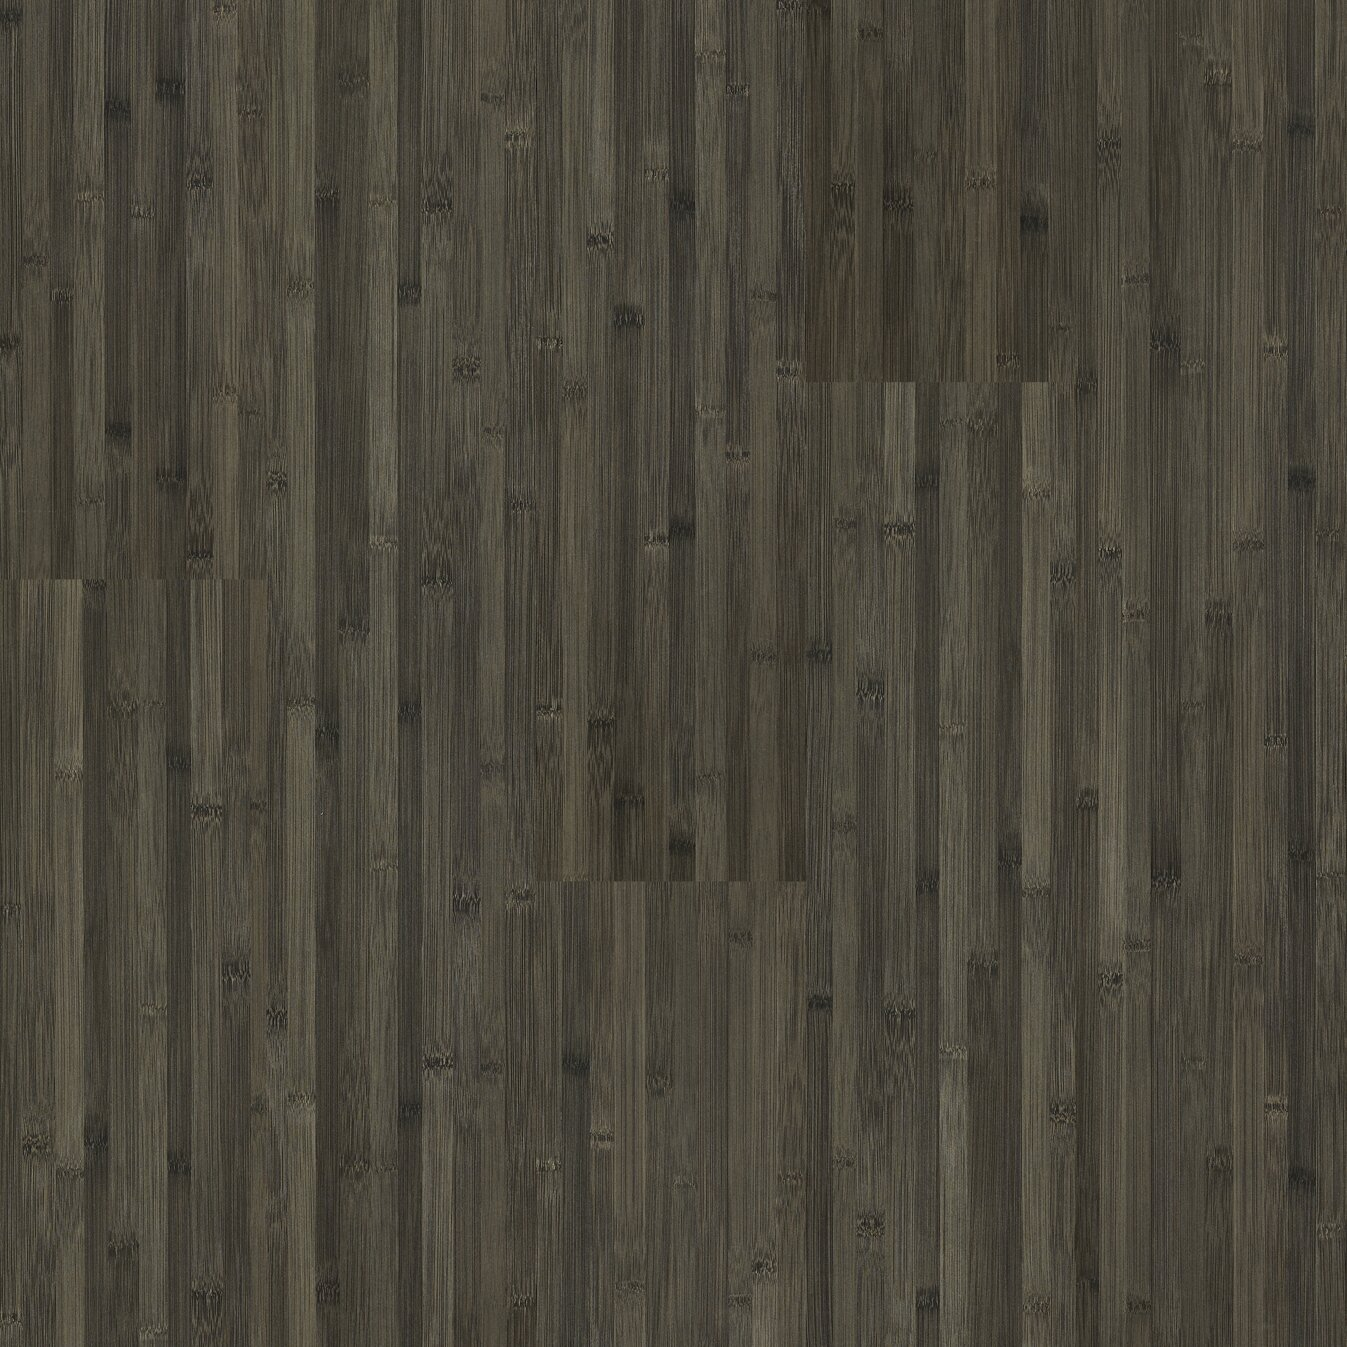 Shaw floors rosswood 8 x 48 x bamboo laminate in for Shaw laminate flooring